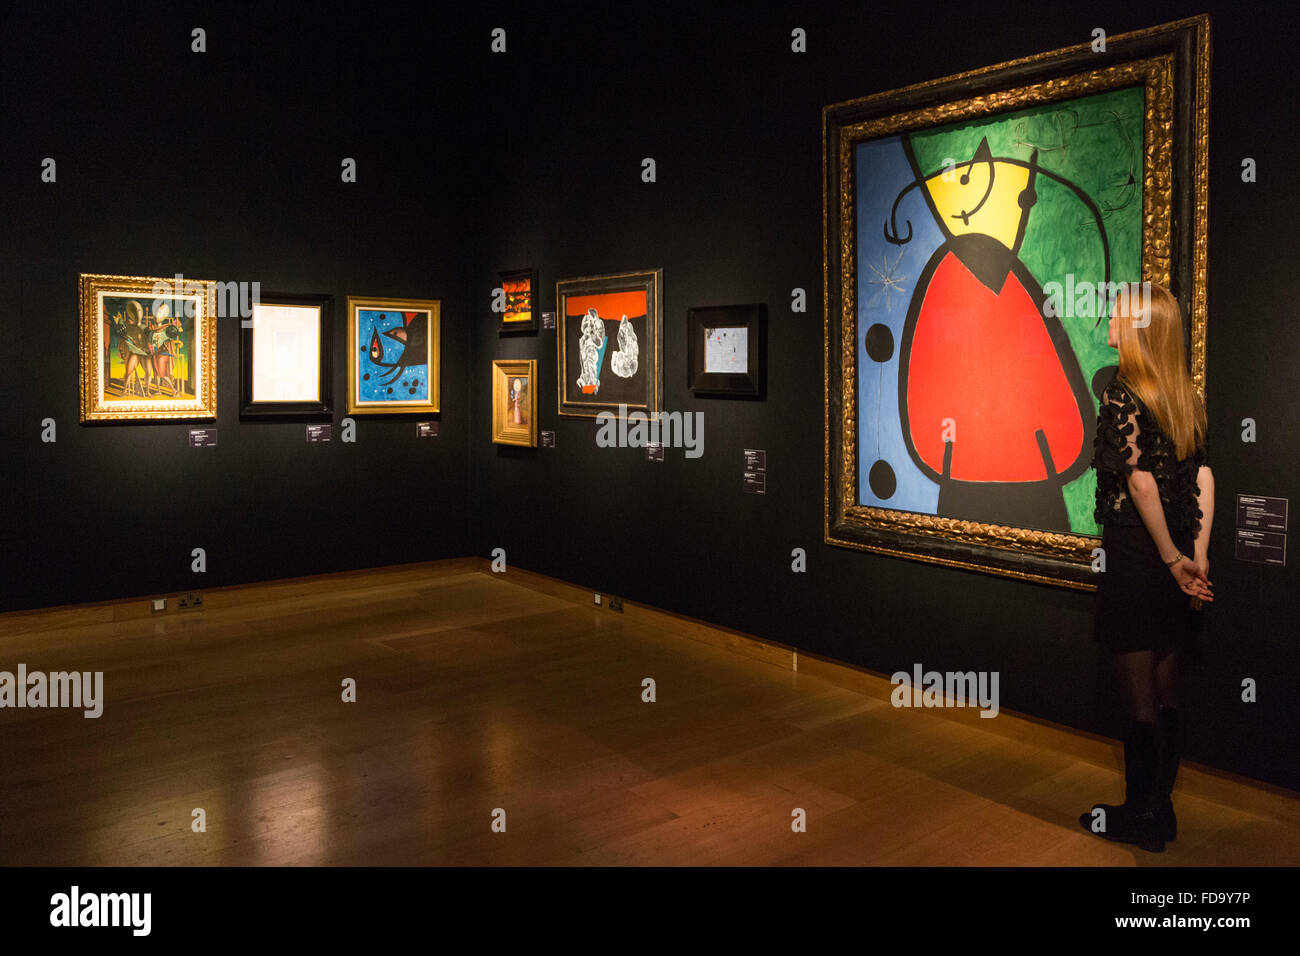 London, UK. 29 January 2016. Pictured: surrealist paintings with Joan Miro's Femme et oiseaux dans la nuit, - Stock Image